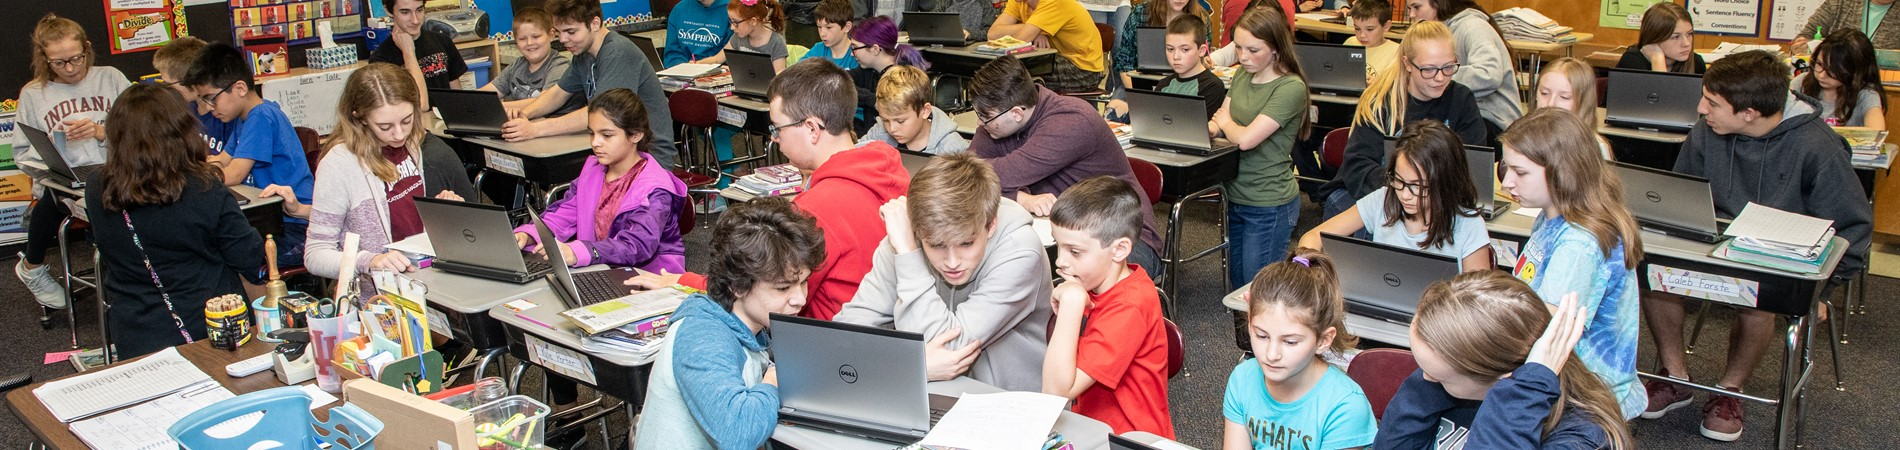 Sophomore English classes helped 3rd grade students learn to research.